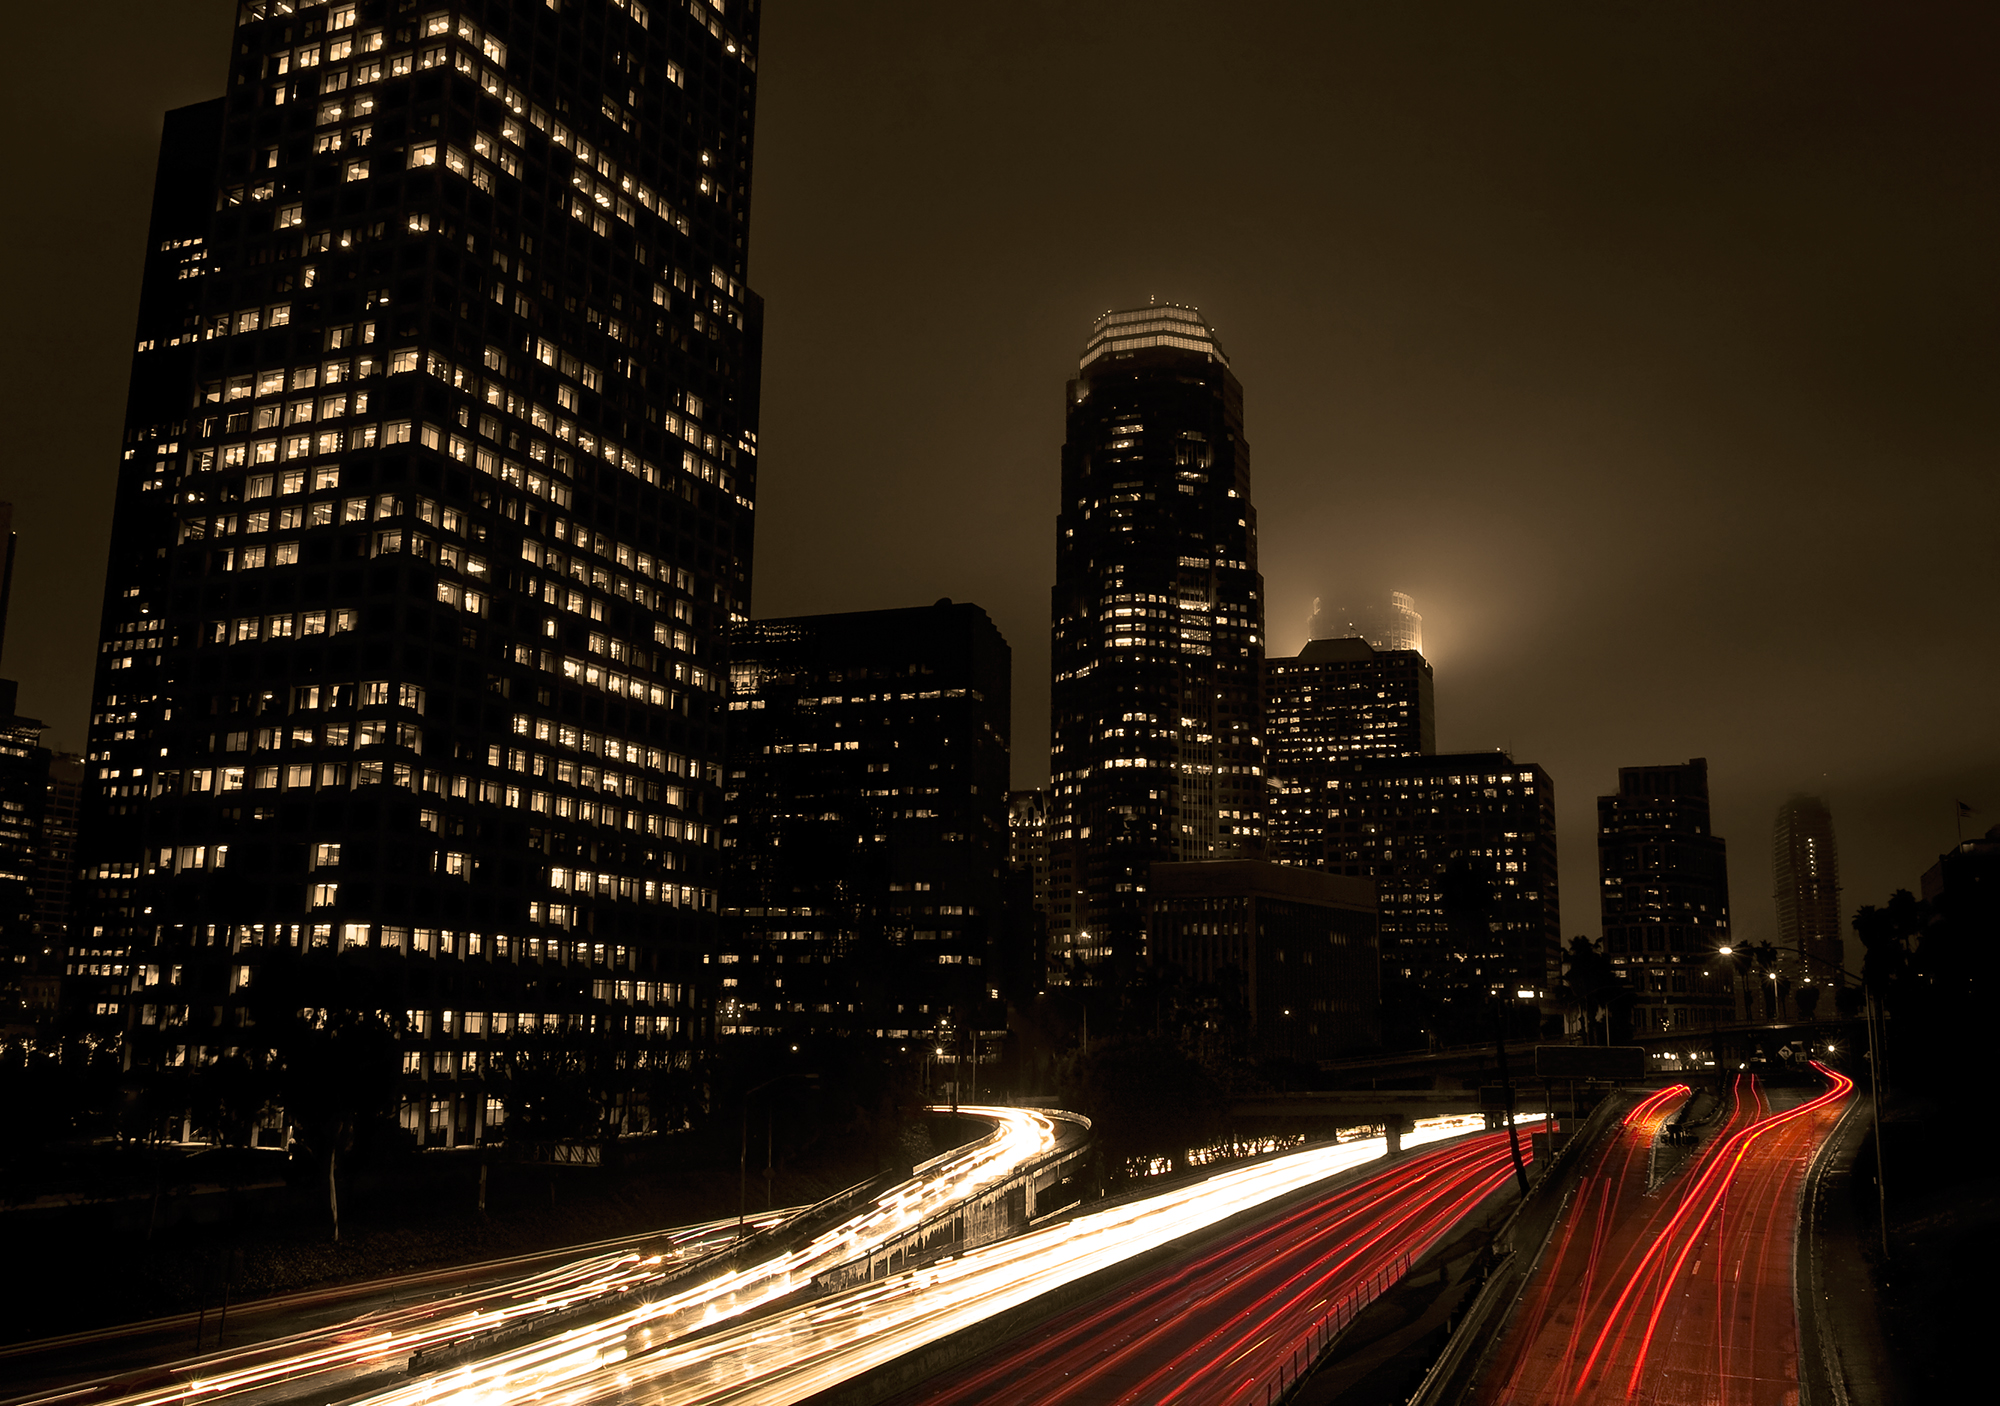 city_night_traffic_6949effect.jpg